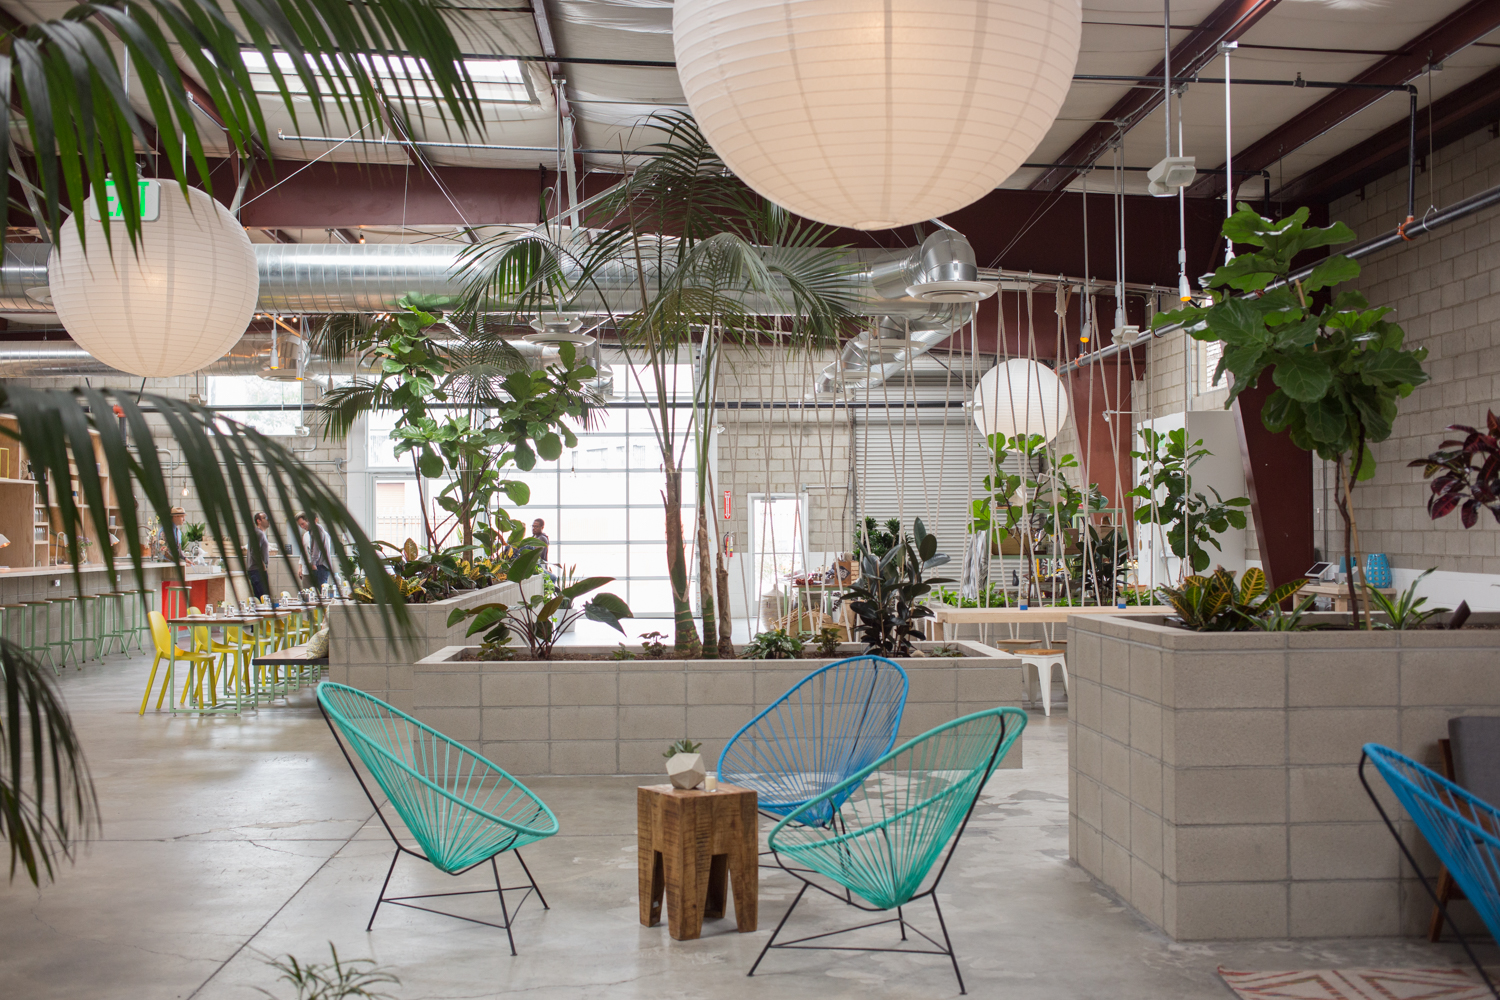 """Love how much light floods into the open space. The greens definitely add to the """"urban oasis"""" feel."""